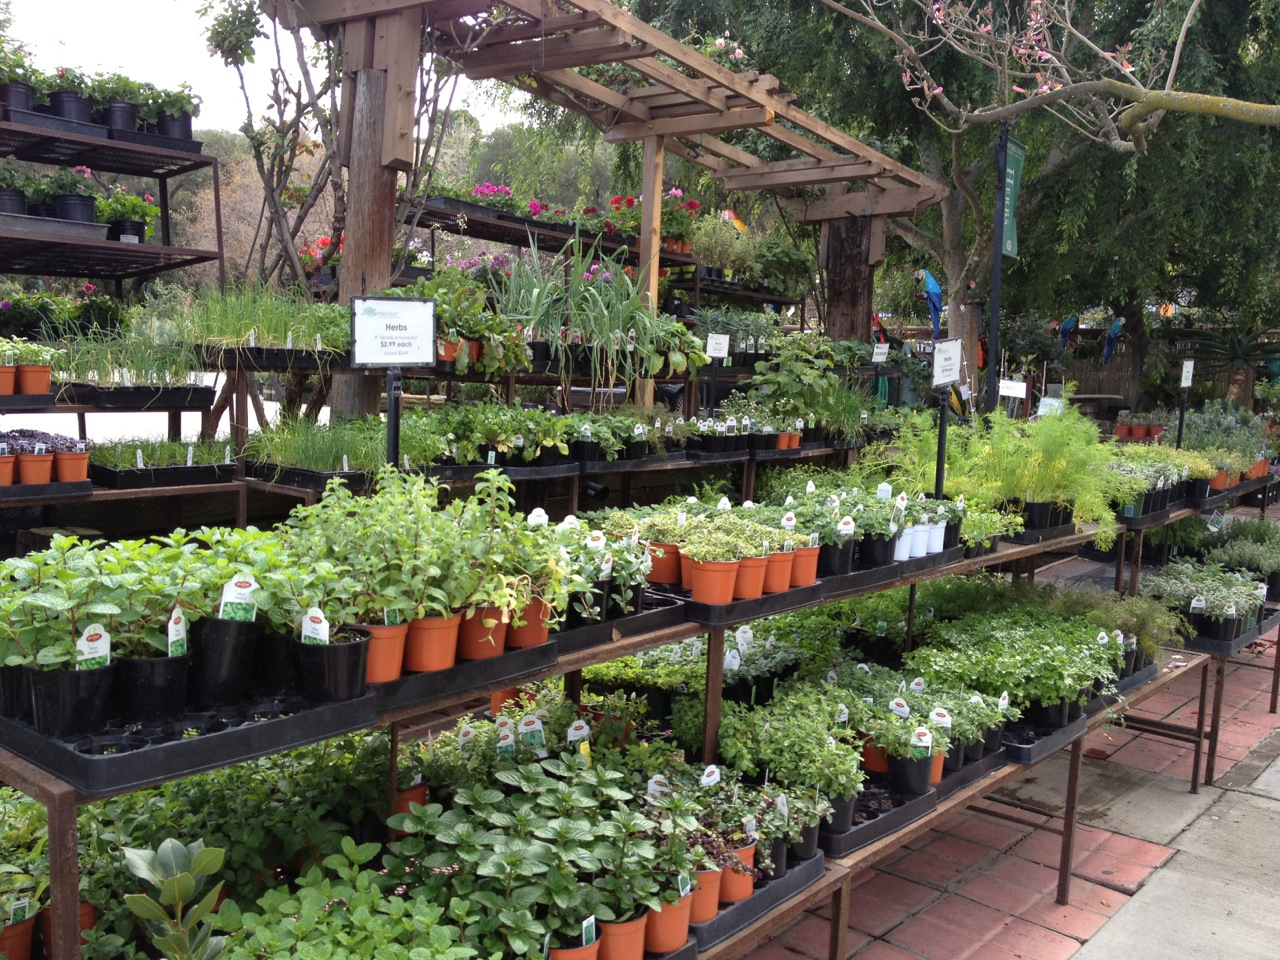 The Herb Section At Sperling Nursery